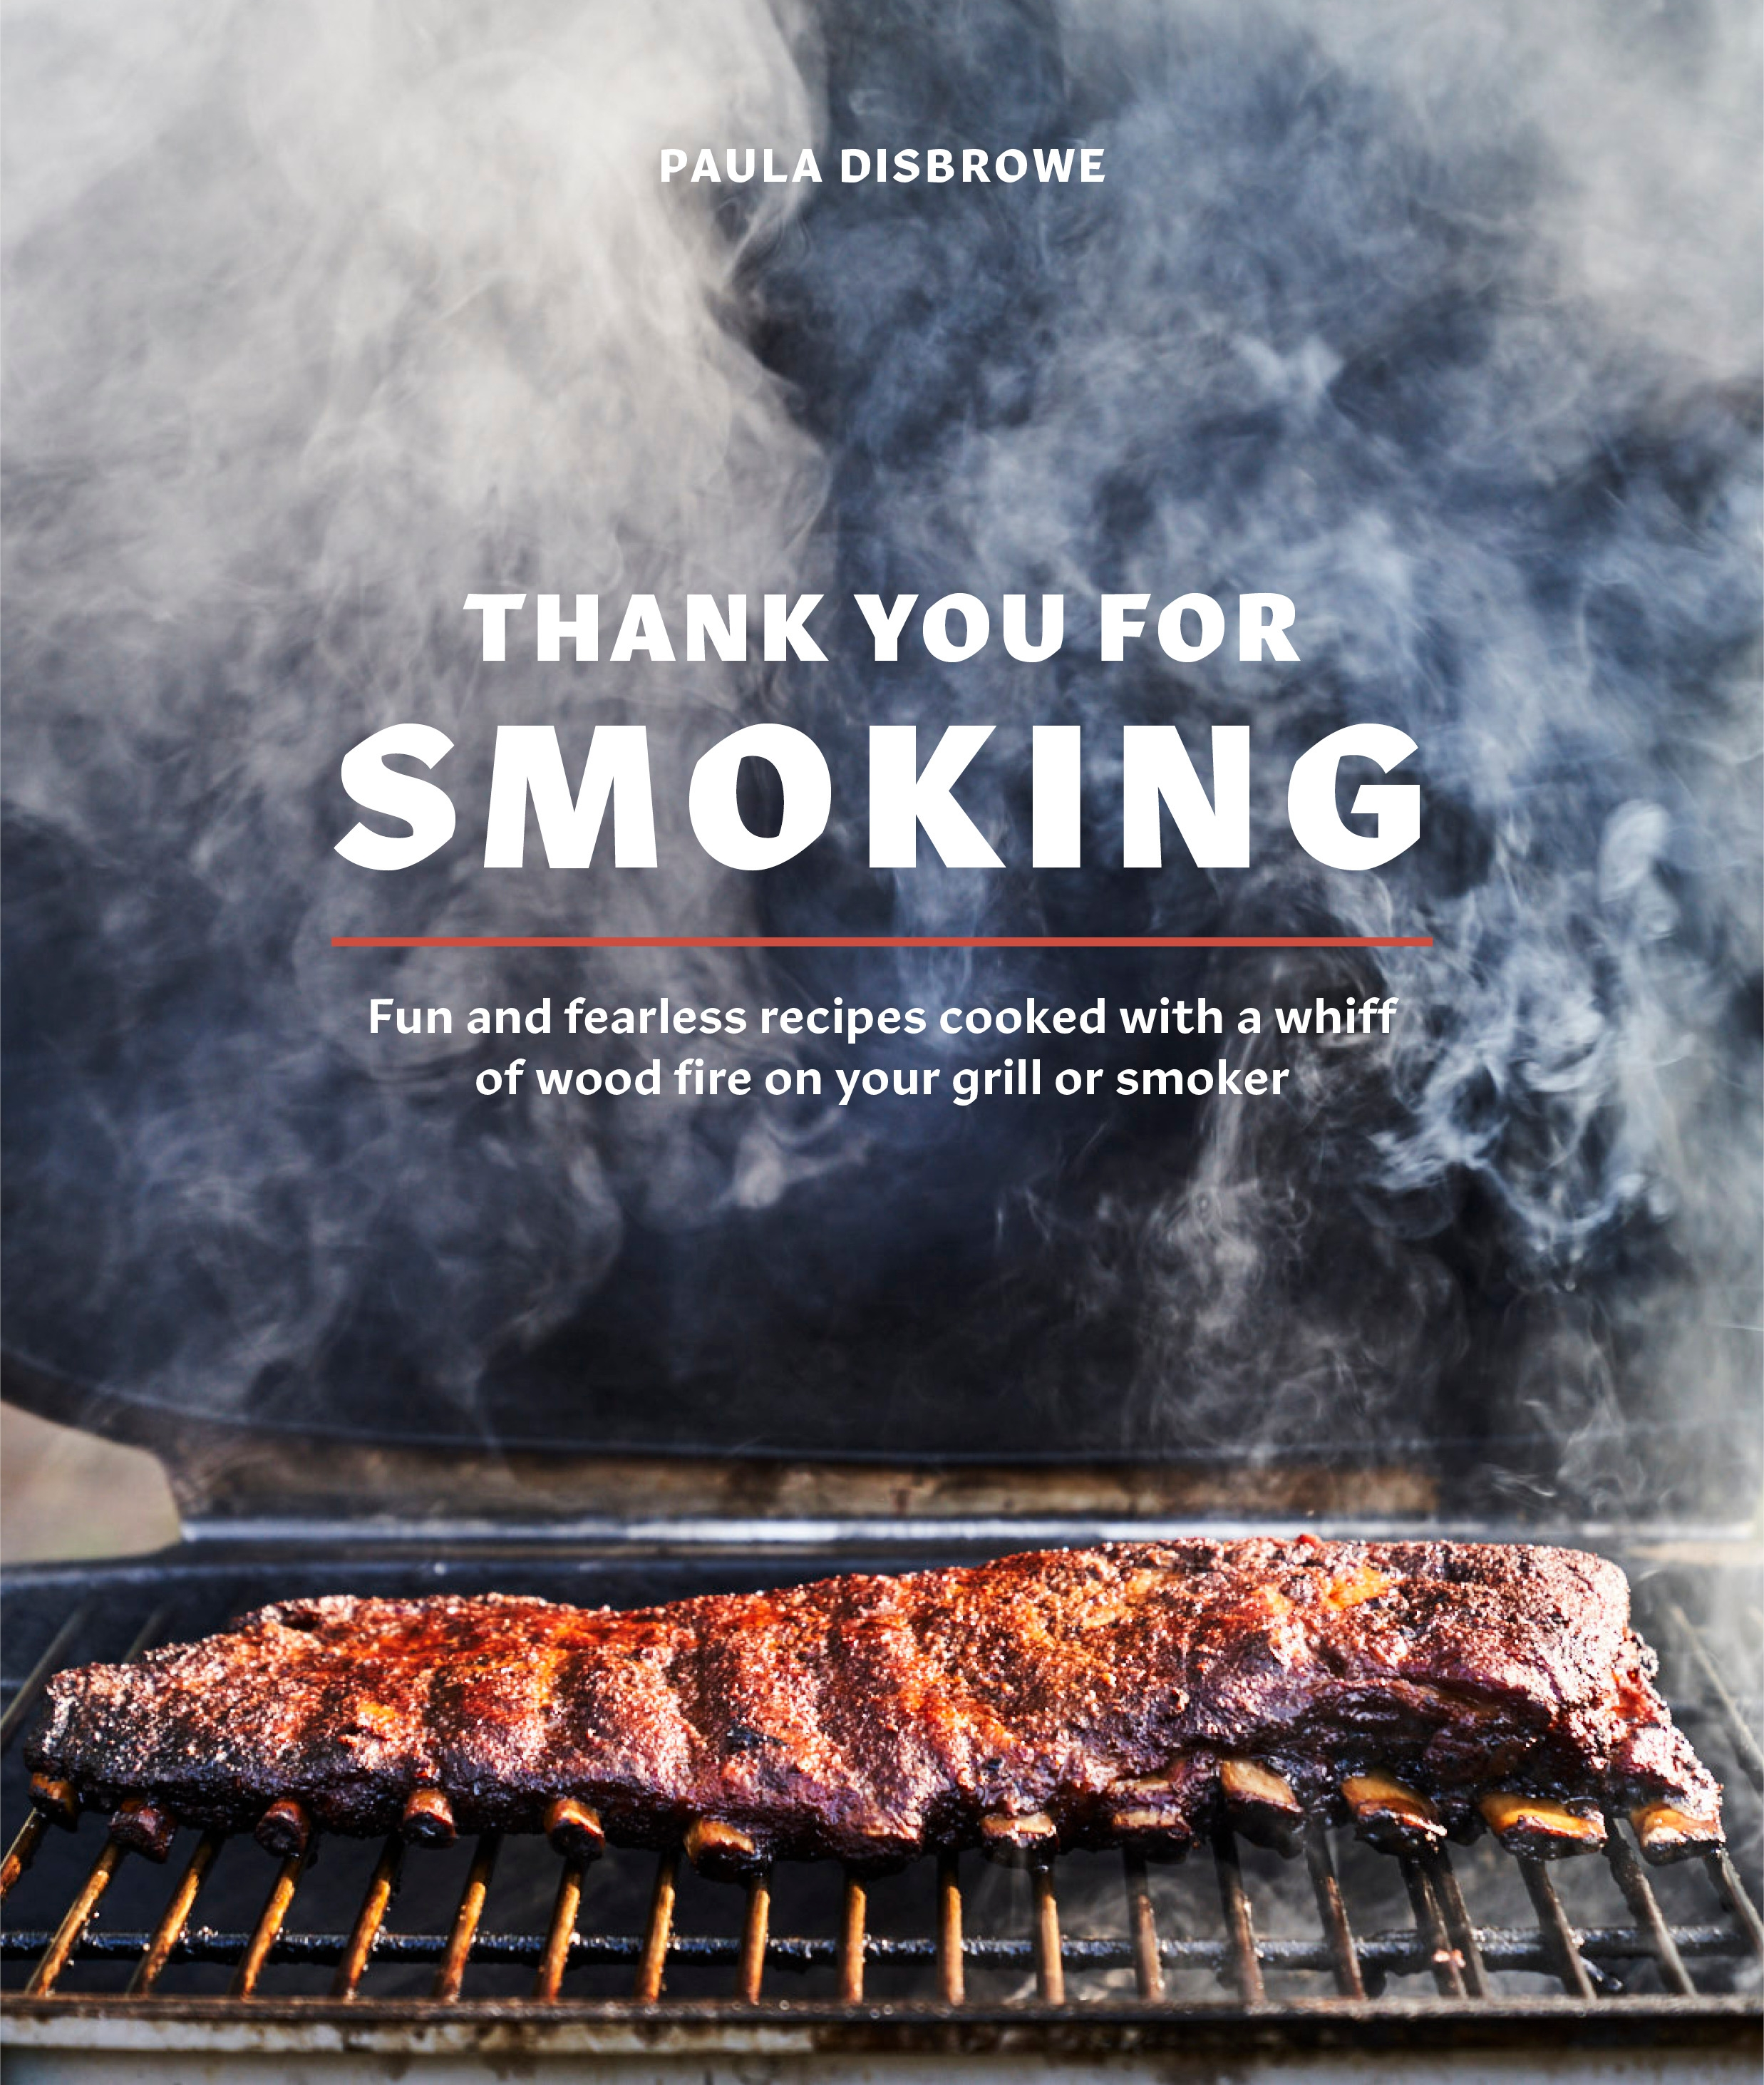 Thank You For Smoking By Paula Disbrowe Penguin Books Australia - Meat Smoker In Australia